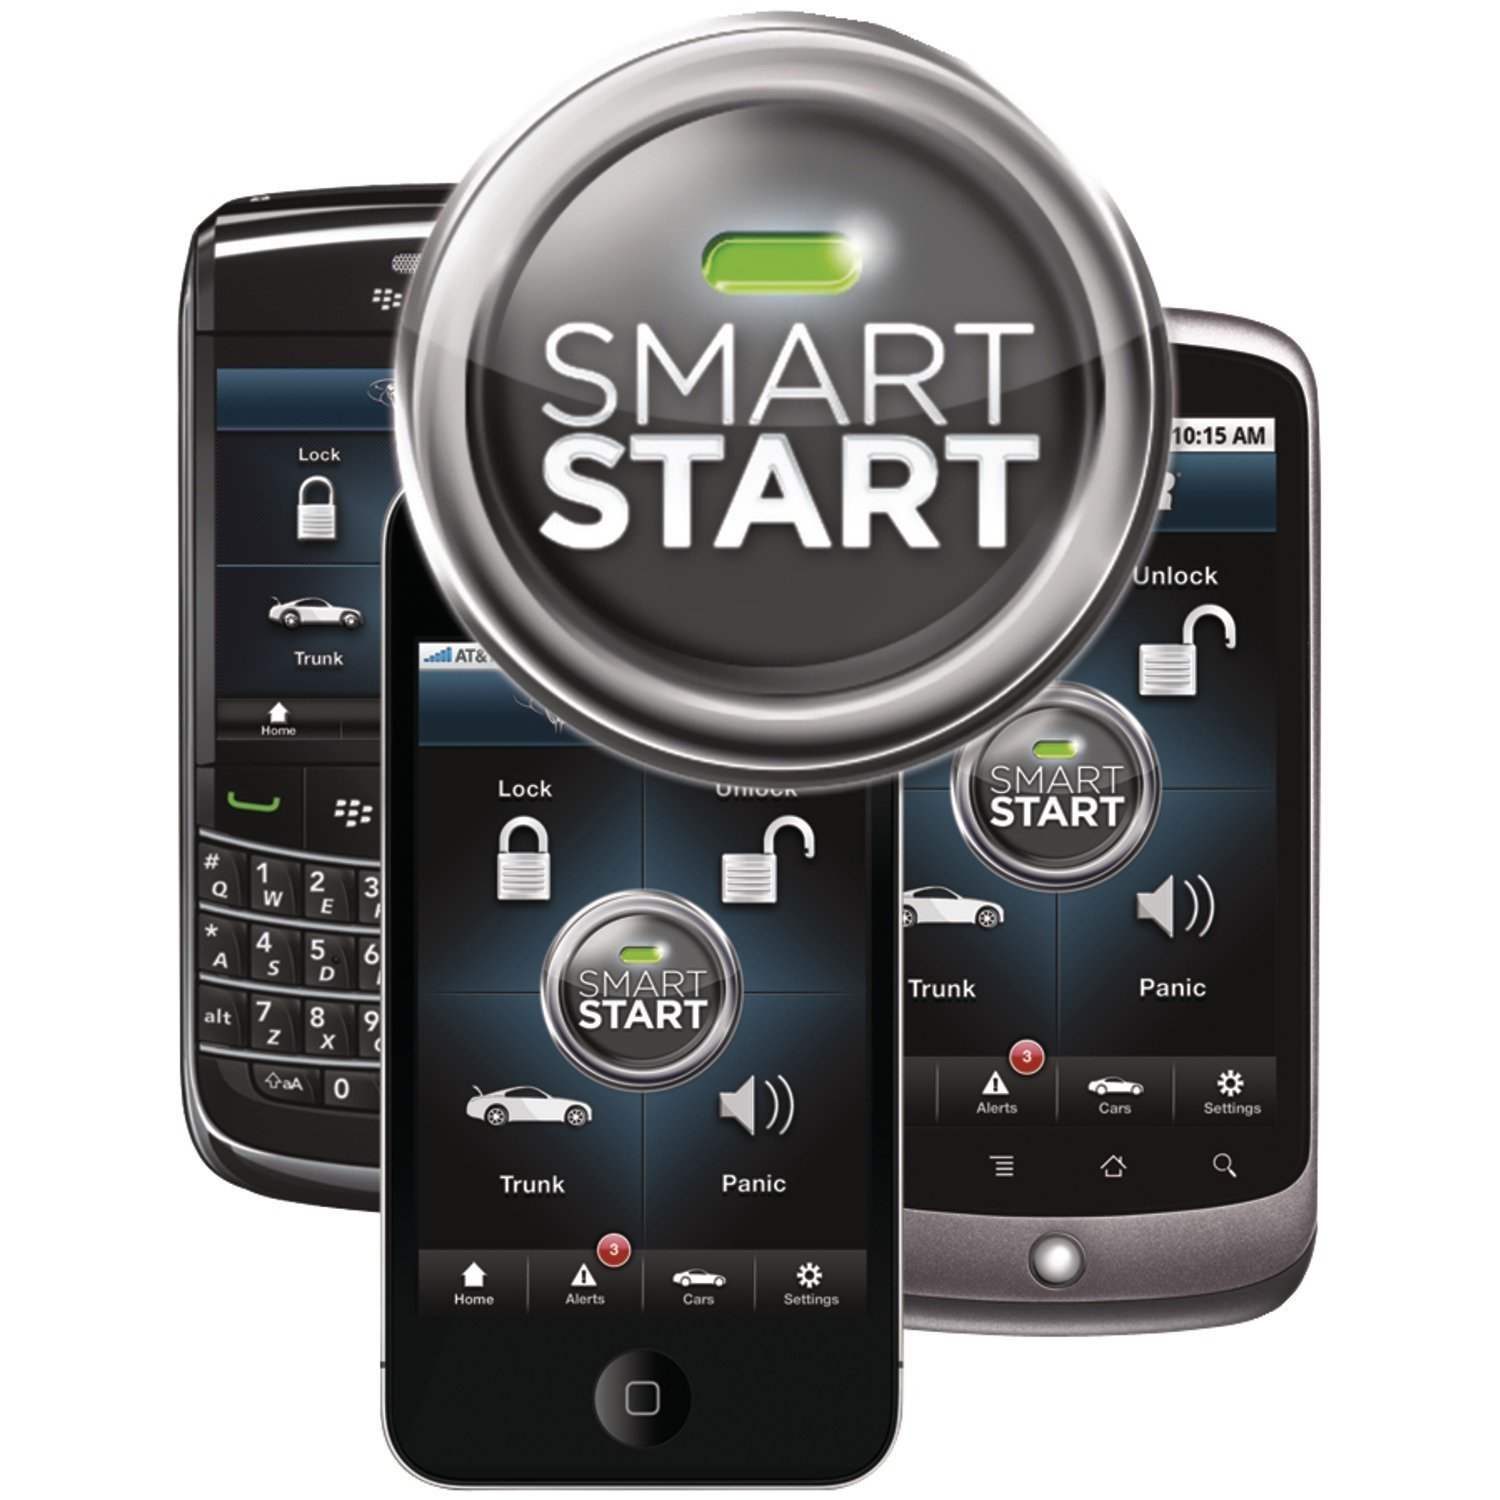 Security Remote Start Model Electronics How Do I Hook Up The Entry Feature Of A Unit In Get Touch Today